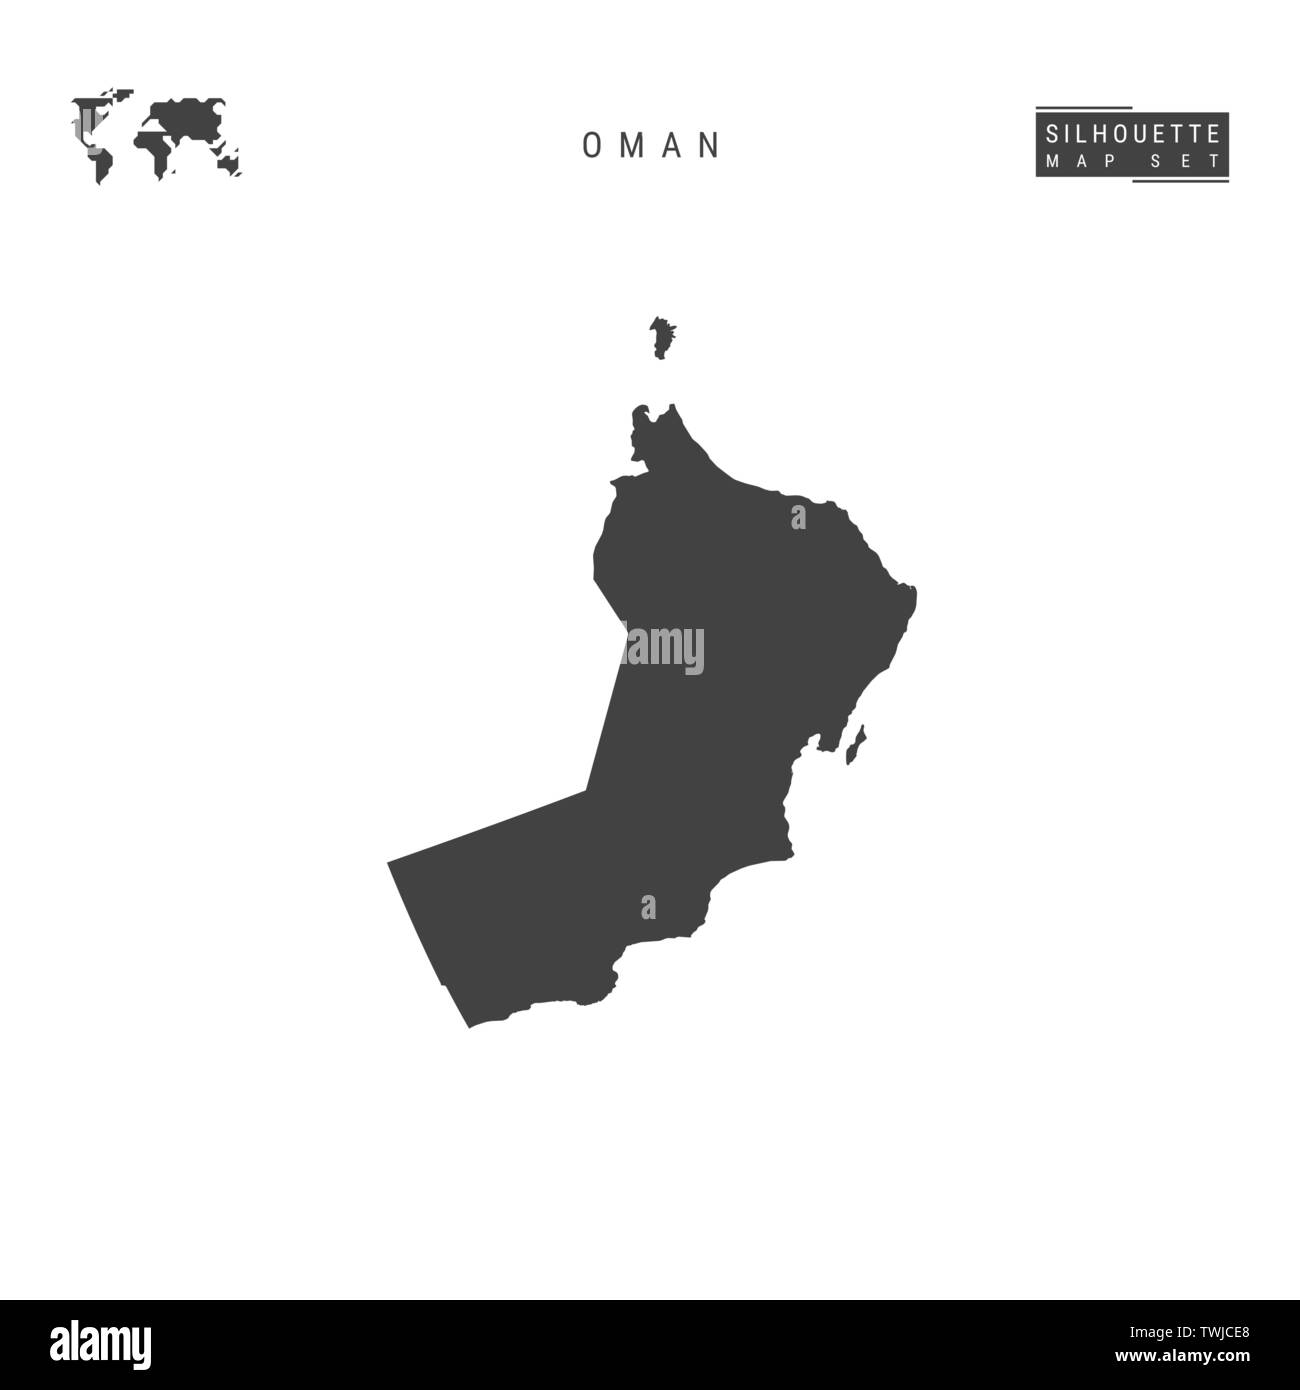 Oman Blank Vector Map Isolated on White Background. High-Detailed Black Silhouette Map of Oman. - Stock Image